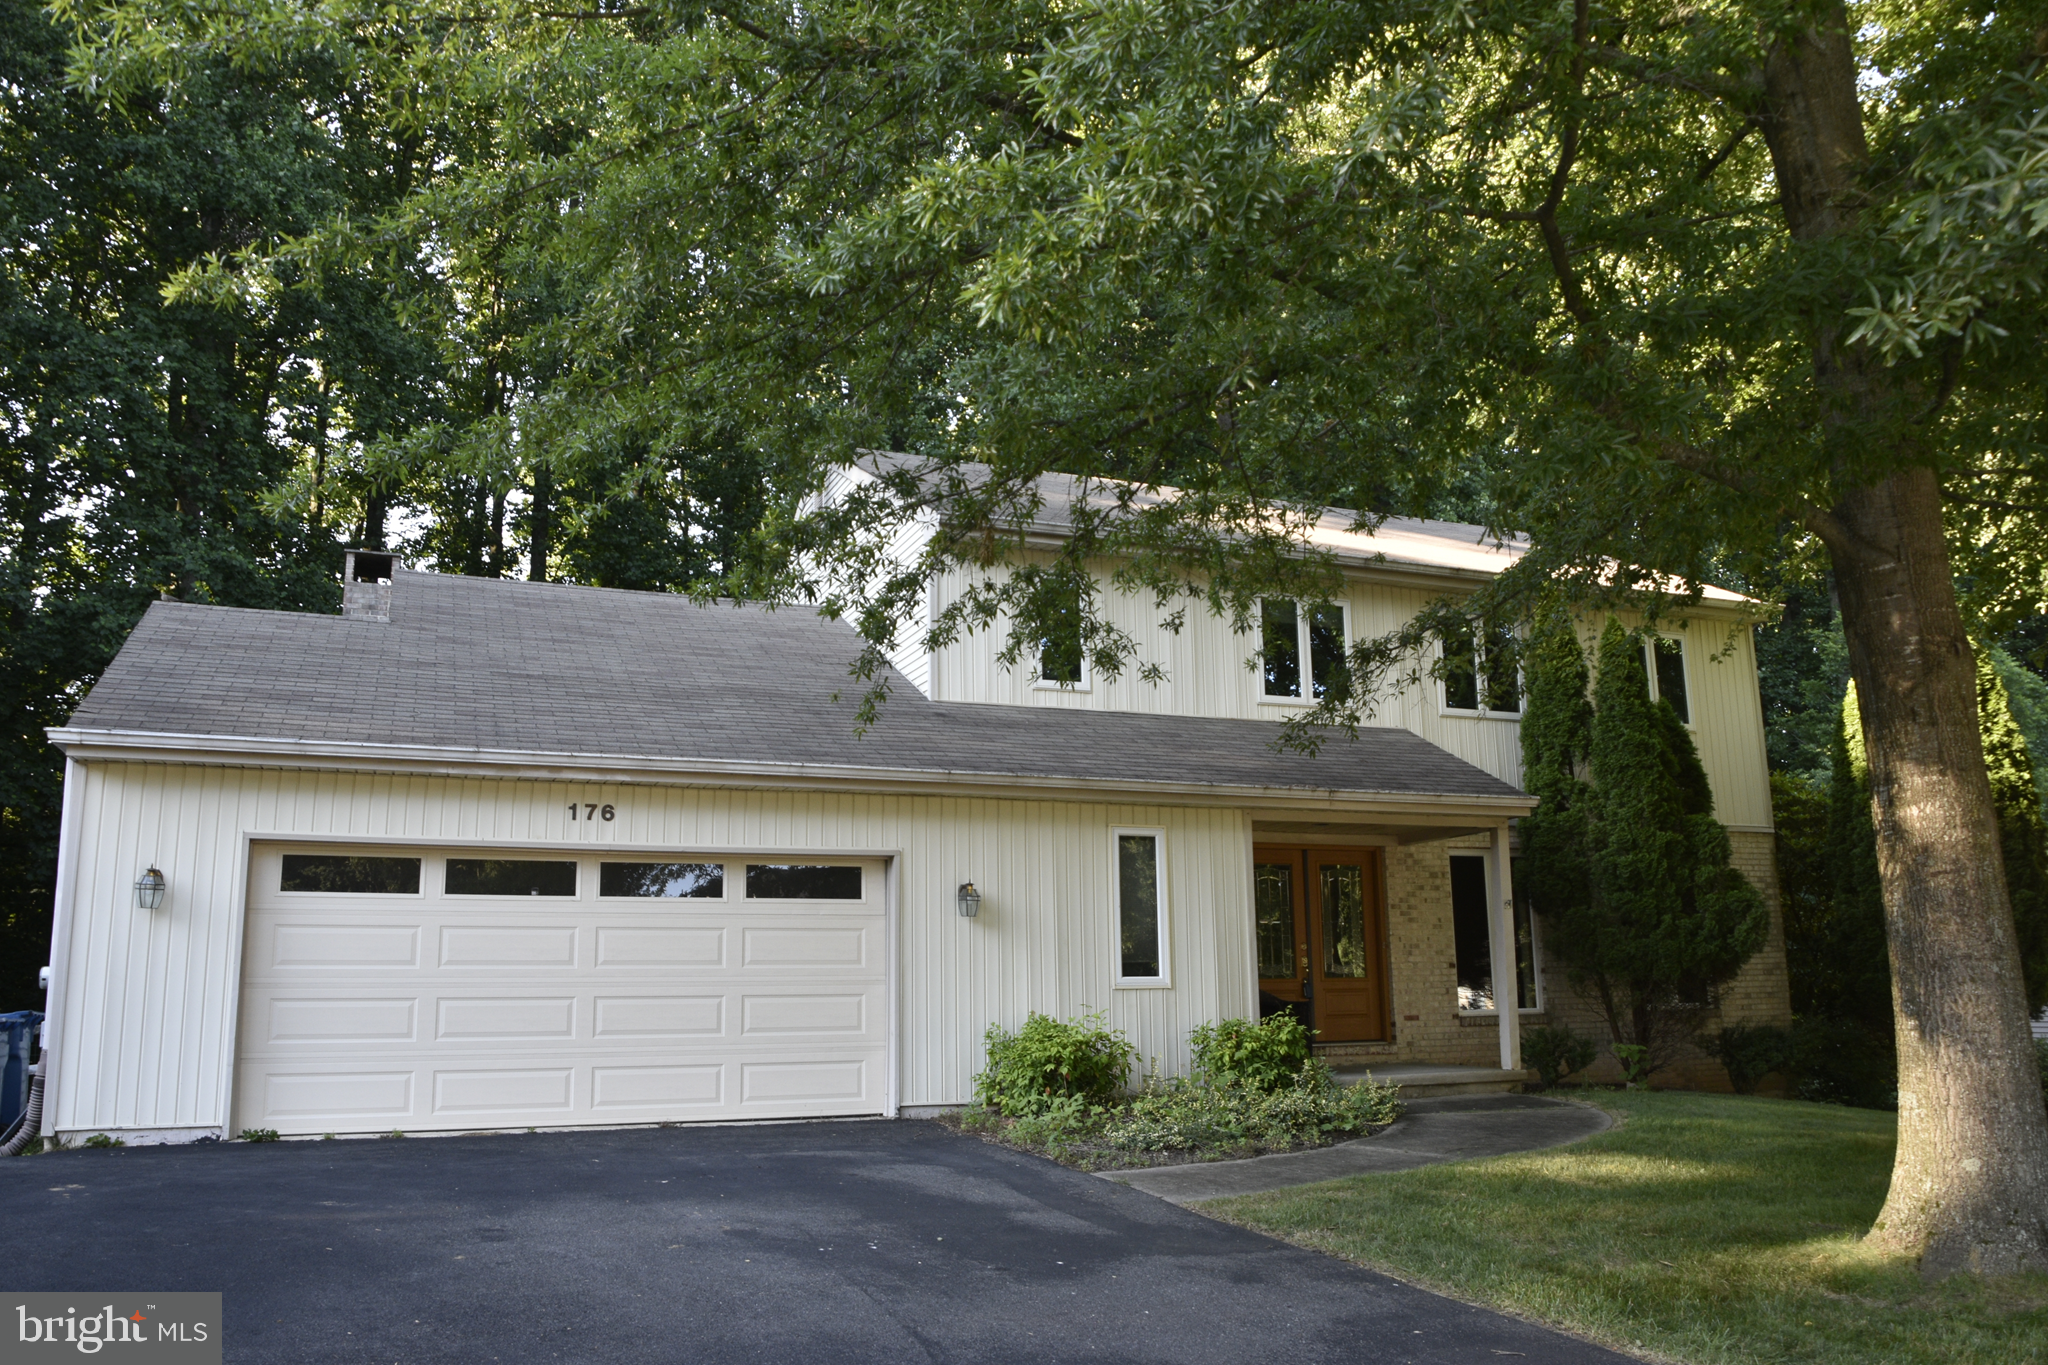 Located in Limestone Hills, this spacious (Fairhill model) 4 BR, 3 full bath (1/2 was just converted to full this month), backs to a large private wooded lot. The eat in kitchen is full of natural light, has hardwoods and has been updated with granite counters, maple cabinetry. The kitchen flows openly to the family room with vaulted ceiling, skylights and brick floor to ceiling gas fireplace. The familiy room also allows  outside enterance through the sliding doors to the spacious deck overlooking the rear fenced in yard. To complete the main level is a laundry room, dining room with hardwood floors and living room.  Upstairs you will find the spacious primary bedroom with private bathroom, three other bedrooms and a shared full bath. The partially finished walkout  basement is perfect for extra entertaining space while the unfinsihed portion allows for plenty of storage or a place to work on your projects.   ************Recent updates include new A/C unit (June 29, 2021), updated windows, doors, and heat pump with propane backup. Roof was replaced in 2005.   Limestone Hills has been voted one of the most desirable communities in New Castle County. This is the opportunity you have been waiting or.